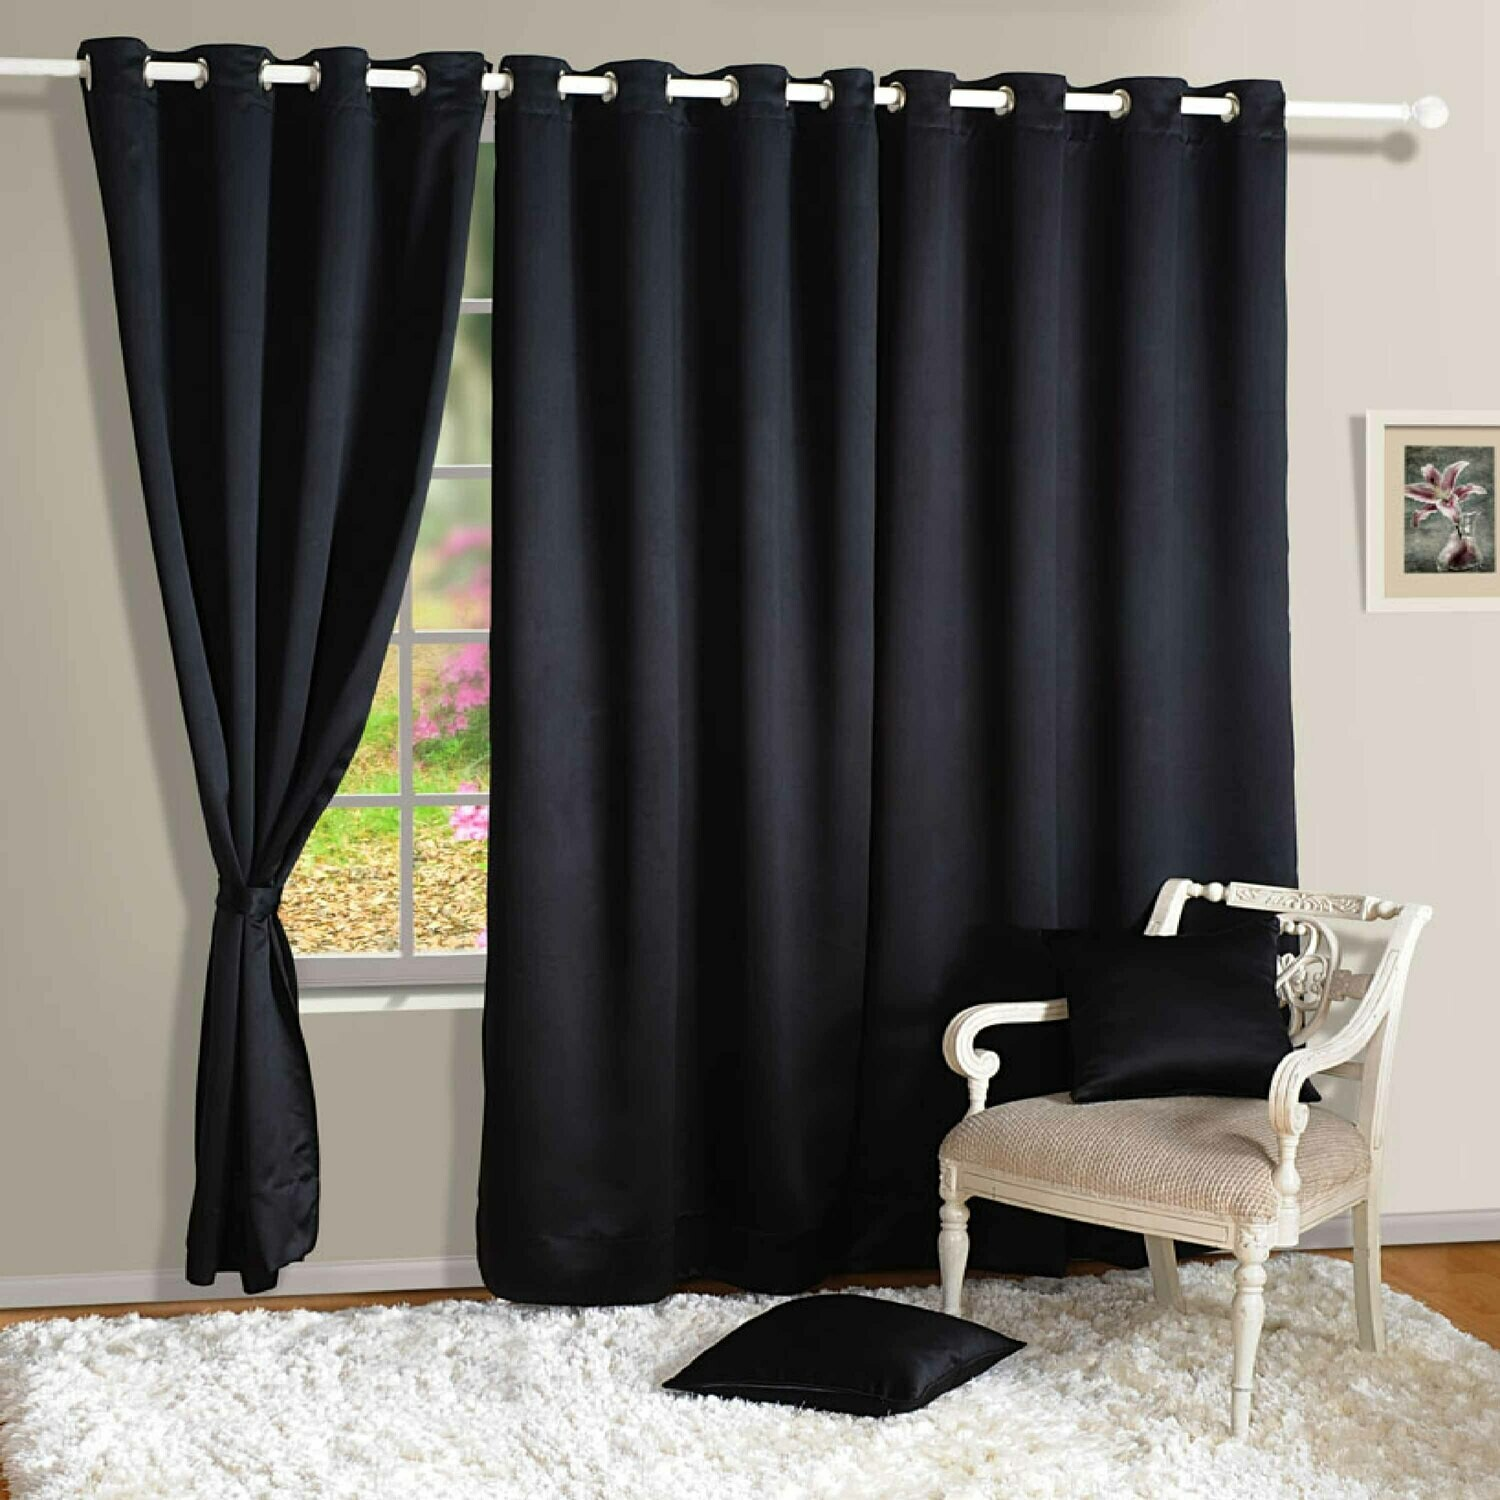 Swayam Black Colour Solid Blackout Eyelet Curtain for Door